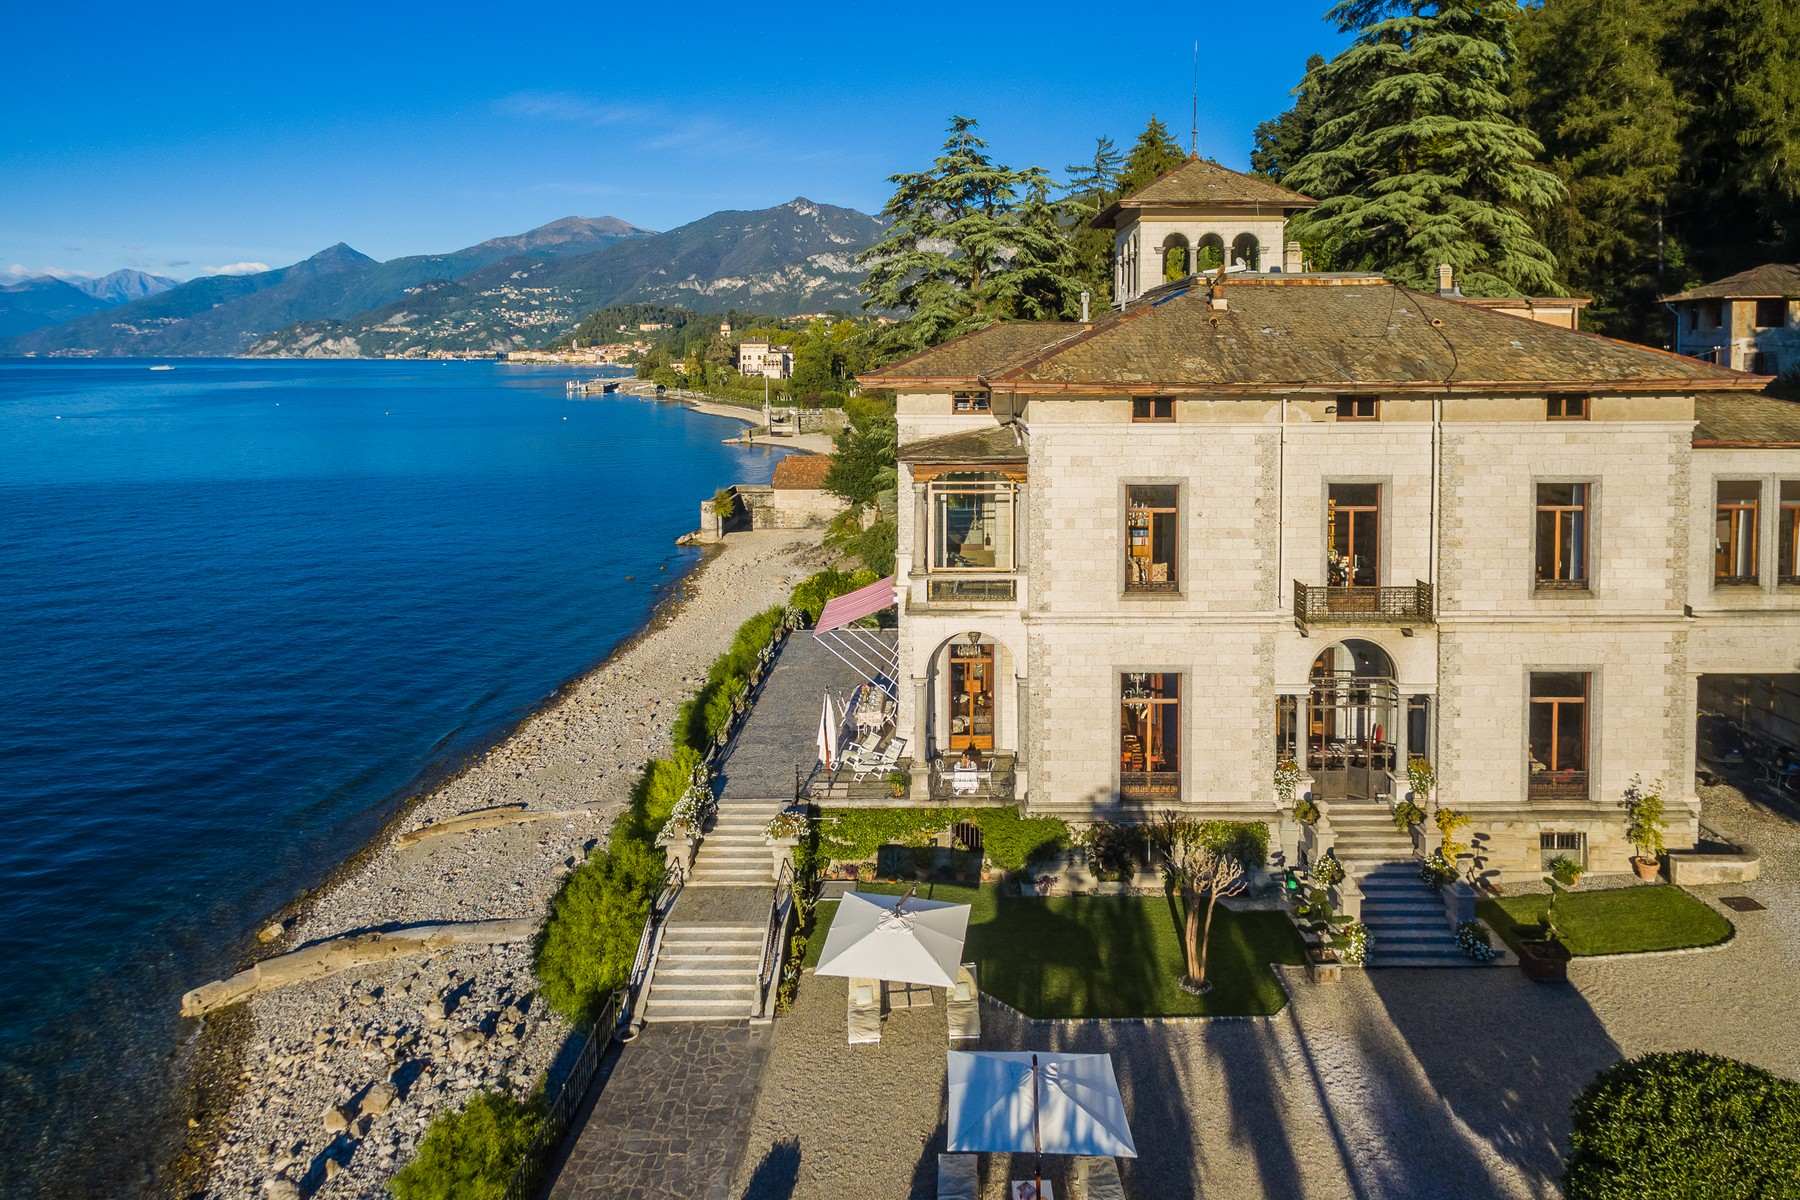 Additional photo for property listing at Magnifica villa Liberty pieds dans l'eau sul Lago di Como Via Beneficienza Bellagio, Como 22021 Italia